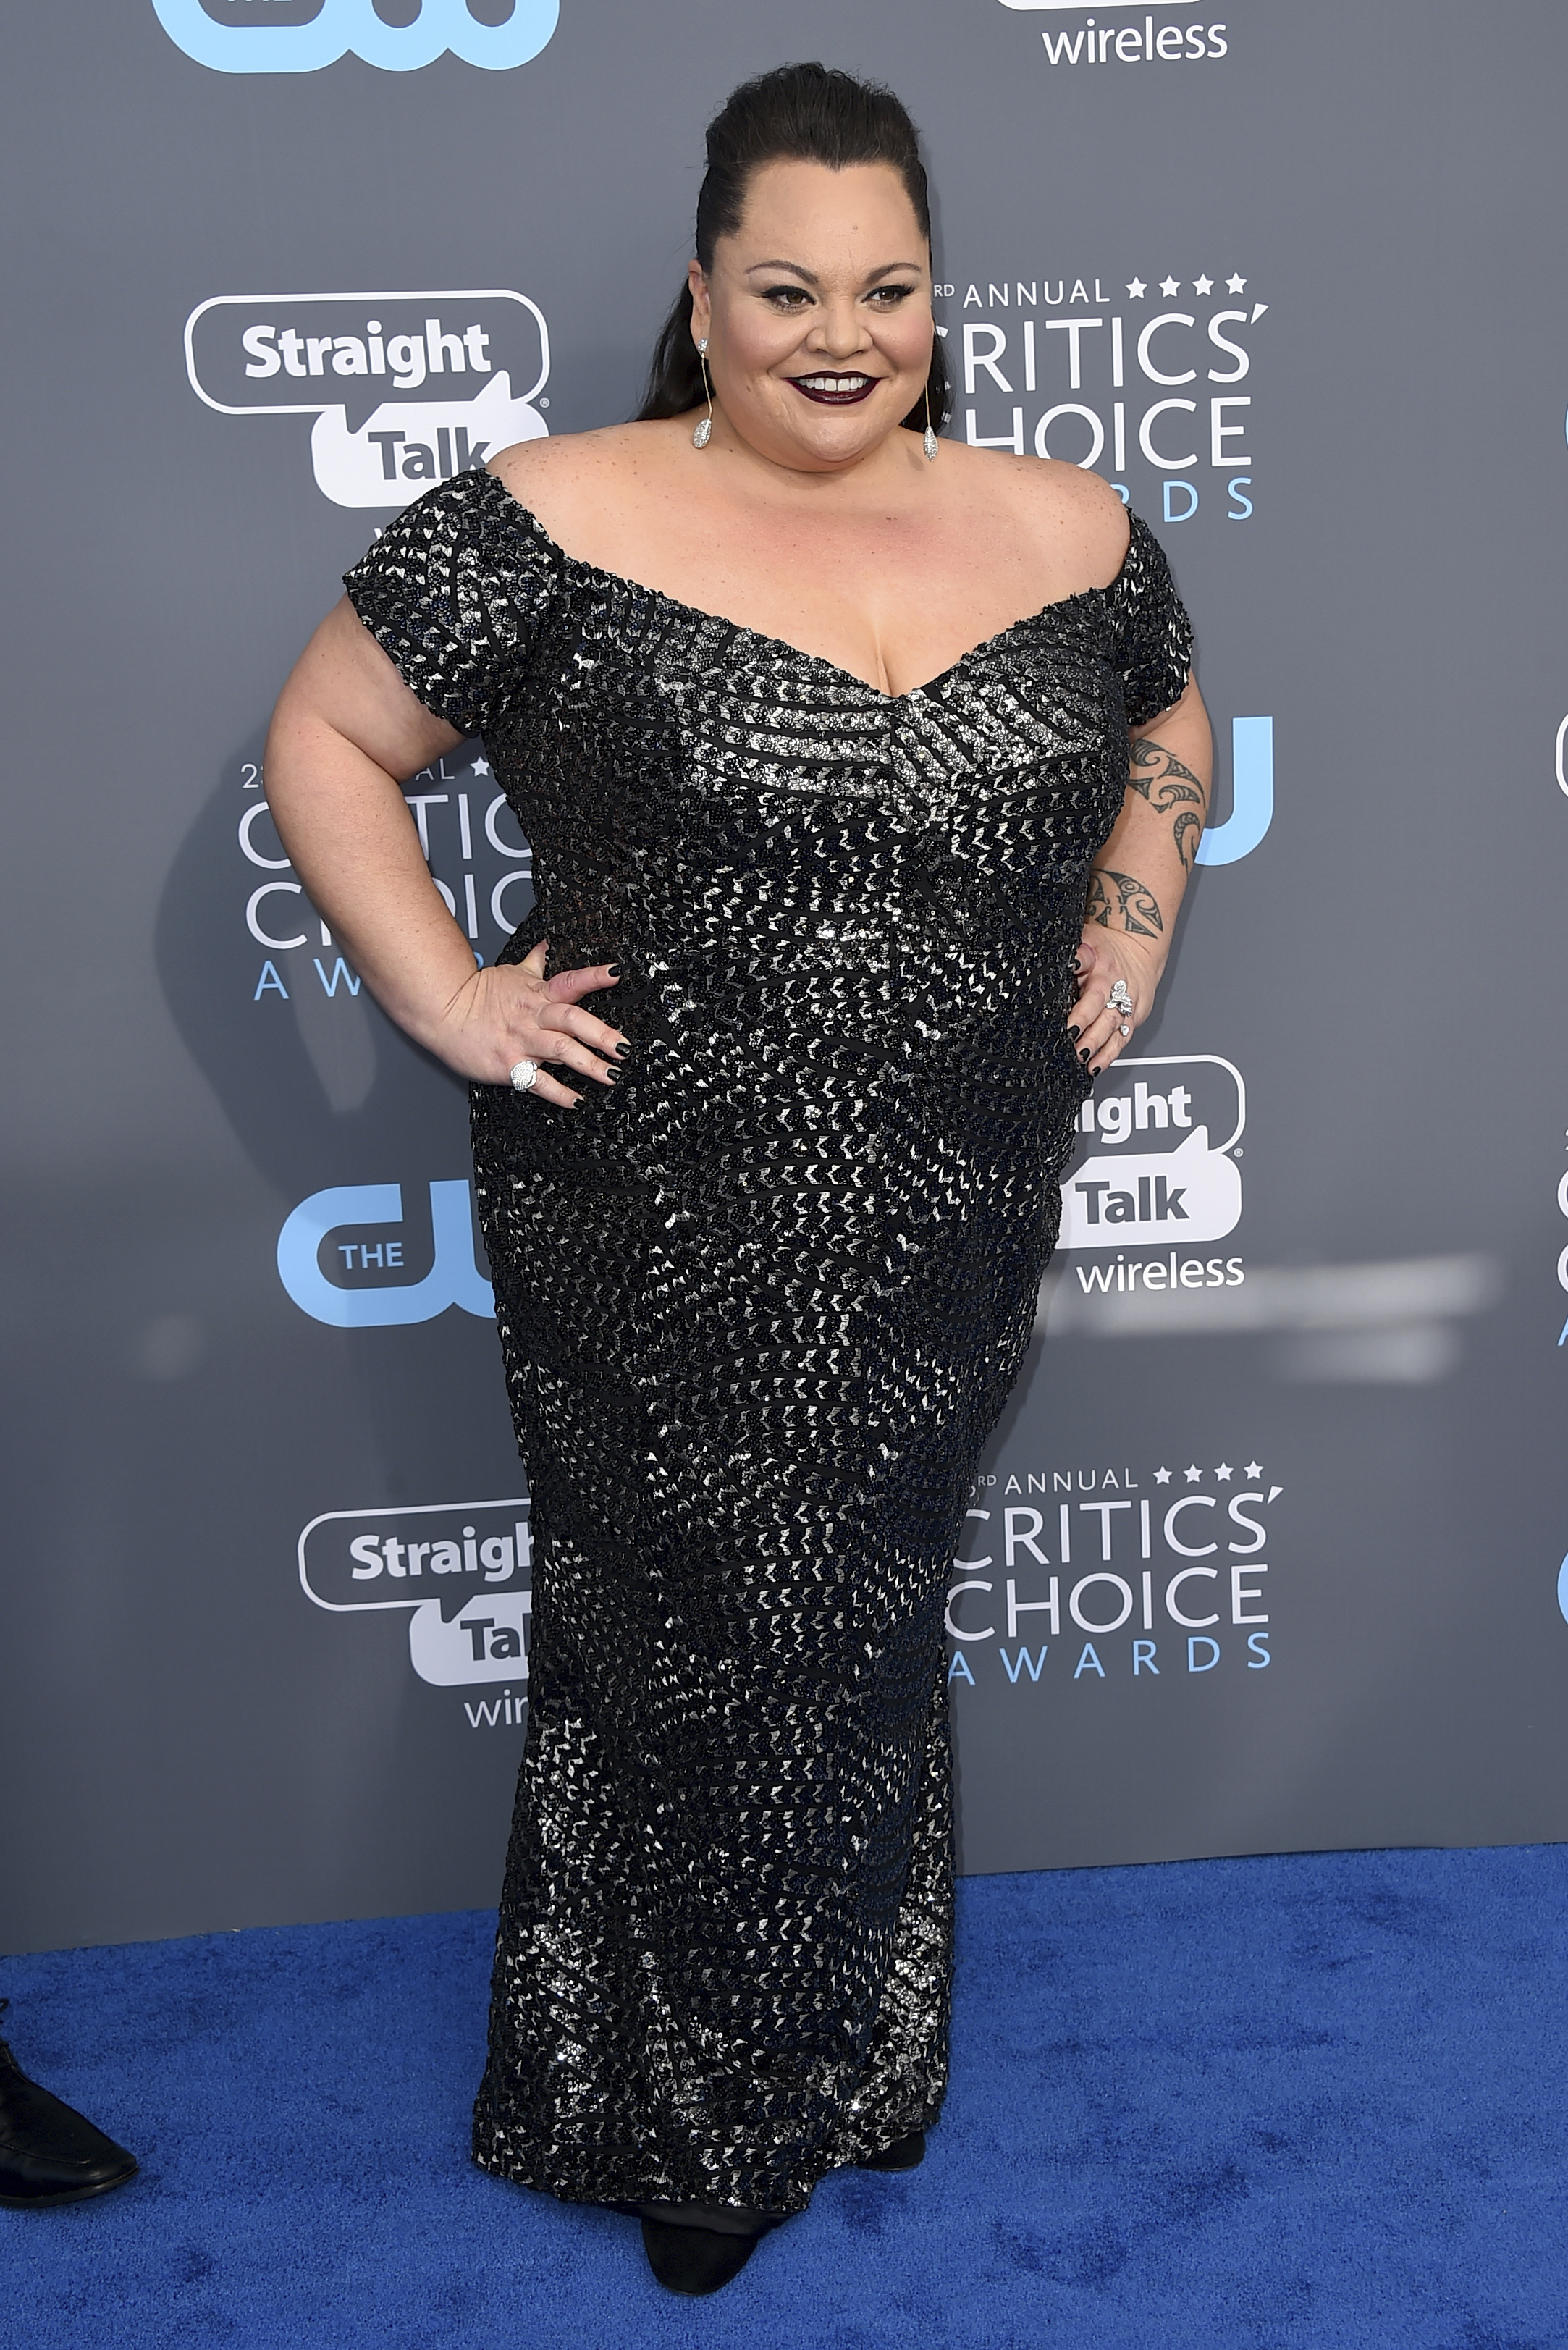 <div class='meta'><div class='origin-logo' data-origin='AP'></div><span class='caption-text' data-credit='Jordan Strauss/Invision/AP'>Keala Settle arrives at the 23rd annual Critics' Choice Awards at the Barker Hangar on Thursday, Jan. 11, 2018, in Santa Monica, Calif.</span></div>